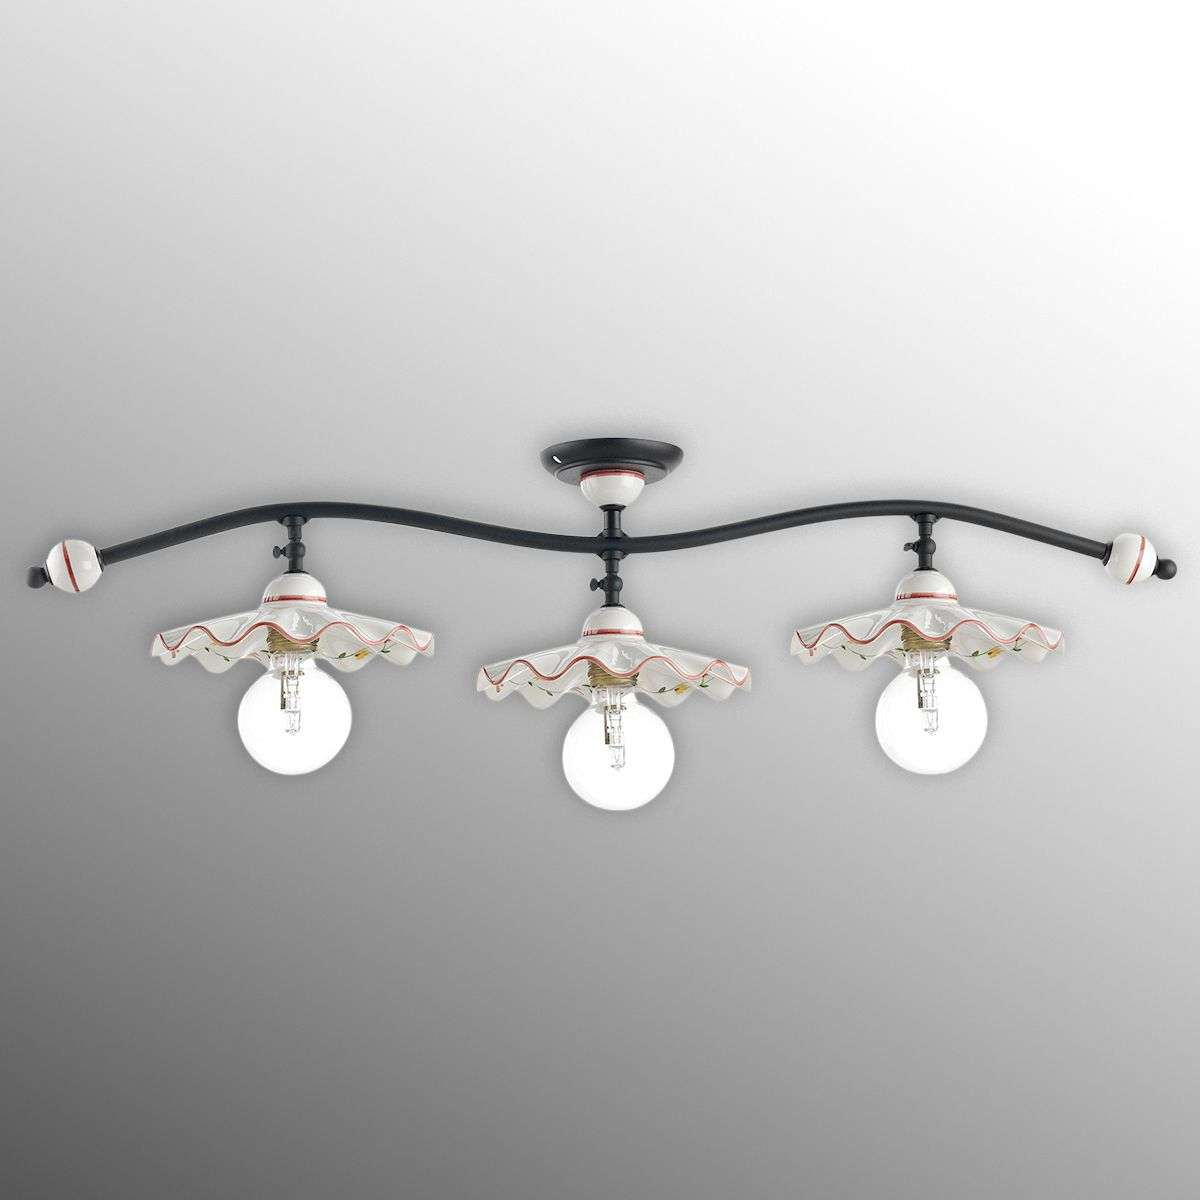 Ceramic ceiling light ametista three bulb lights ceramic ceiling light ametista three bulb 3046033 31 aloadofball Image collections